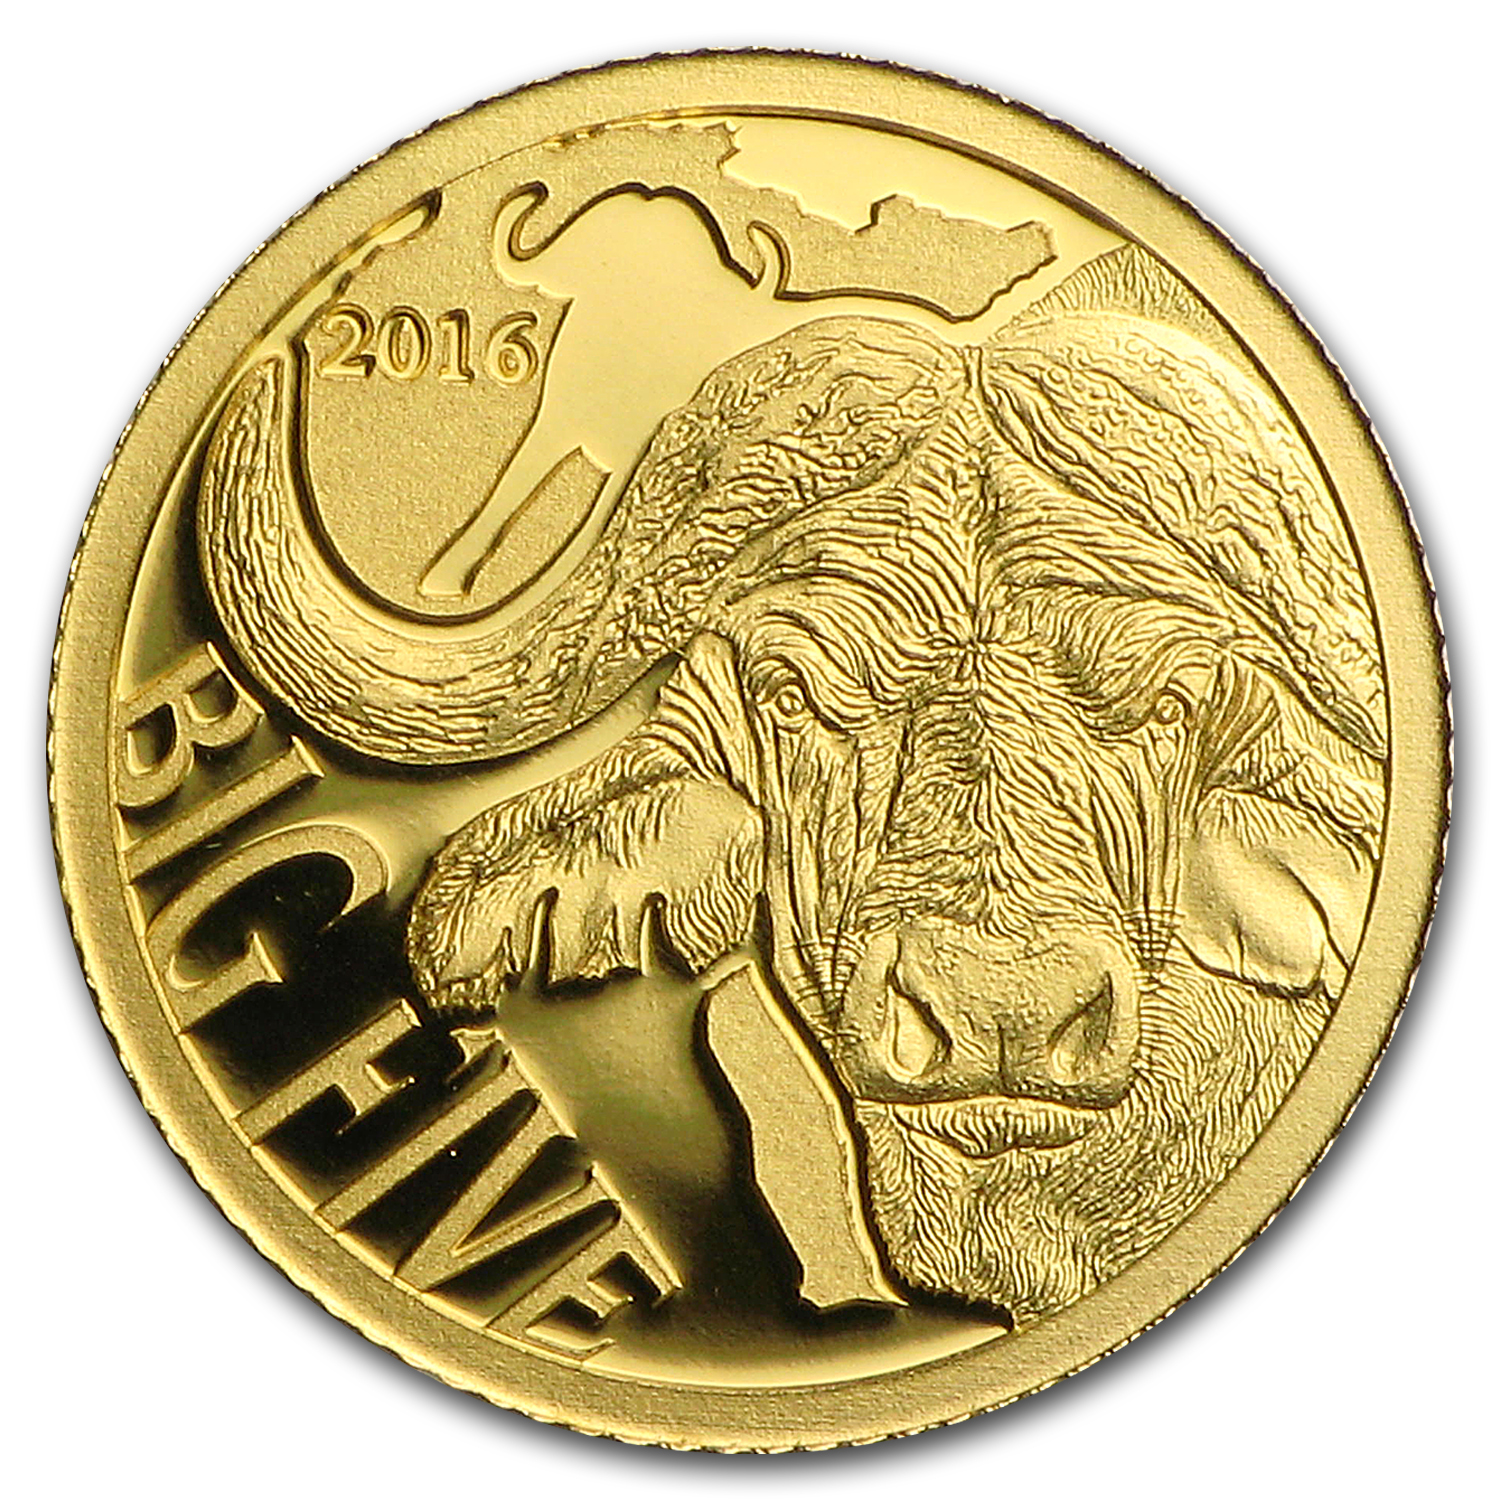 2016 Cameroon 1/2 gram Gold Buffalo Proof (The Big Five)